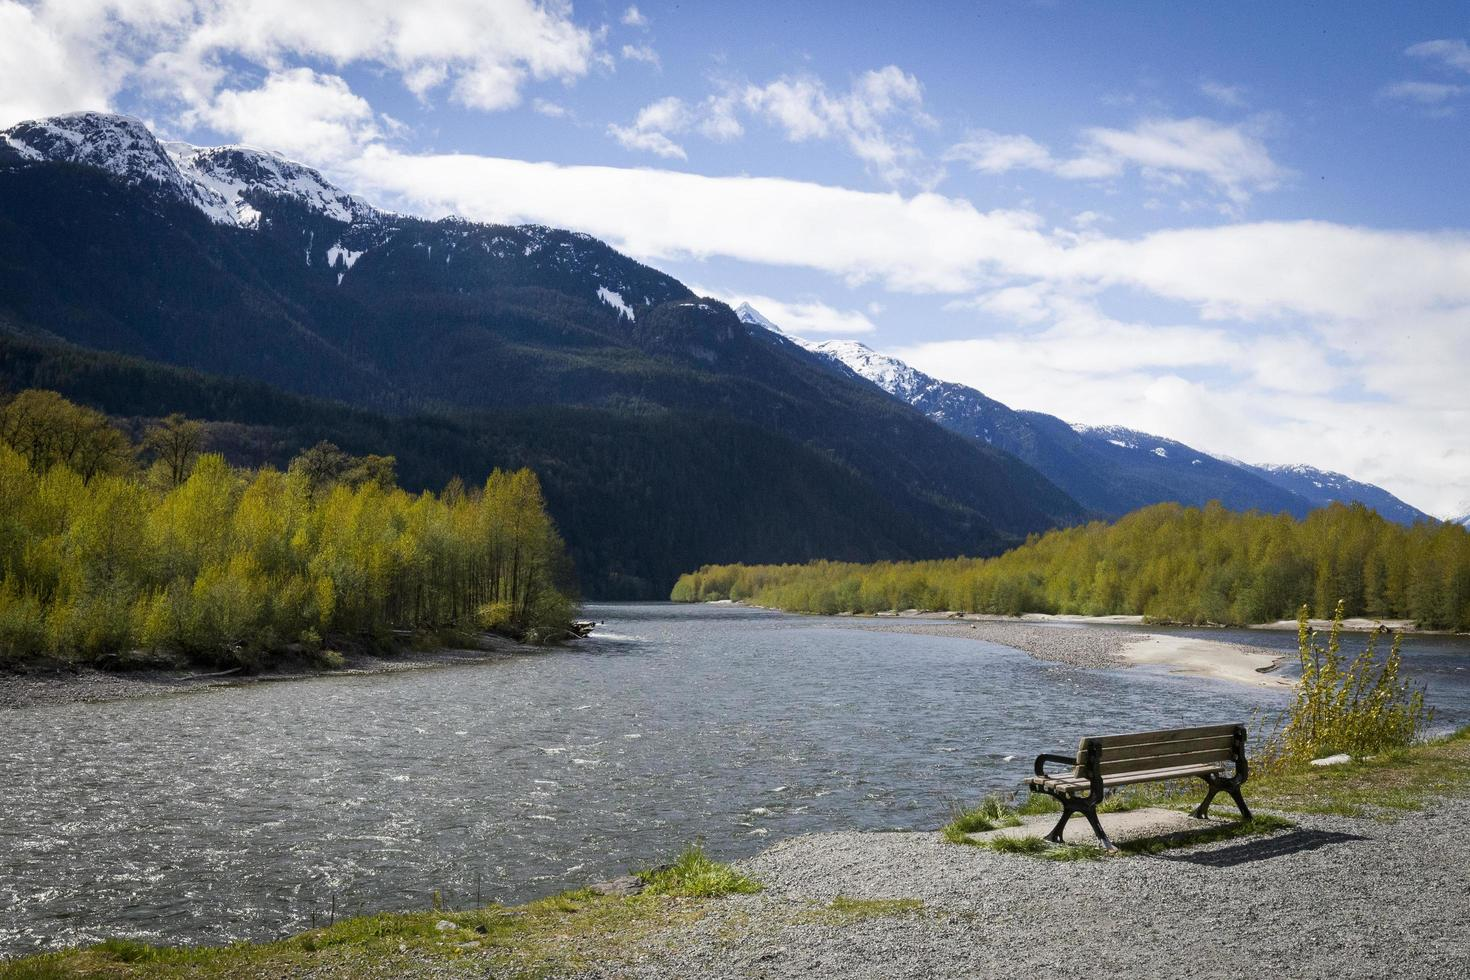 Bench by a river and mountain photo